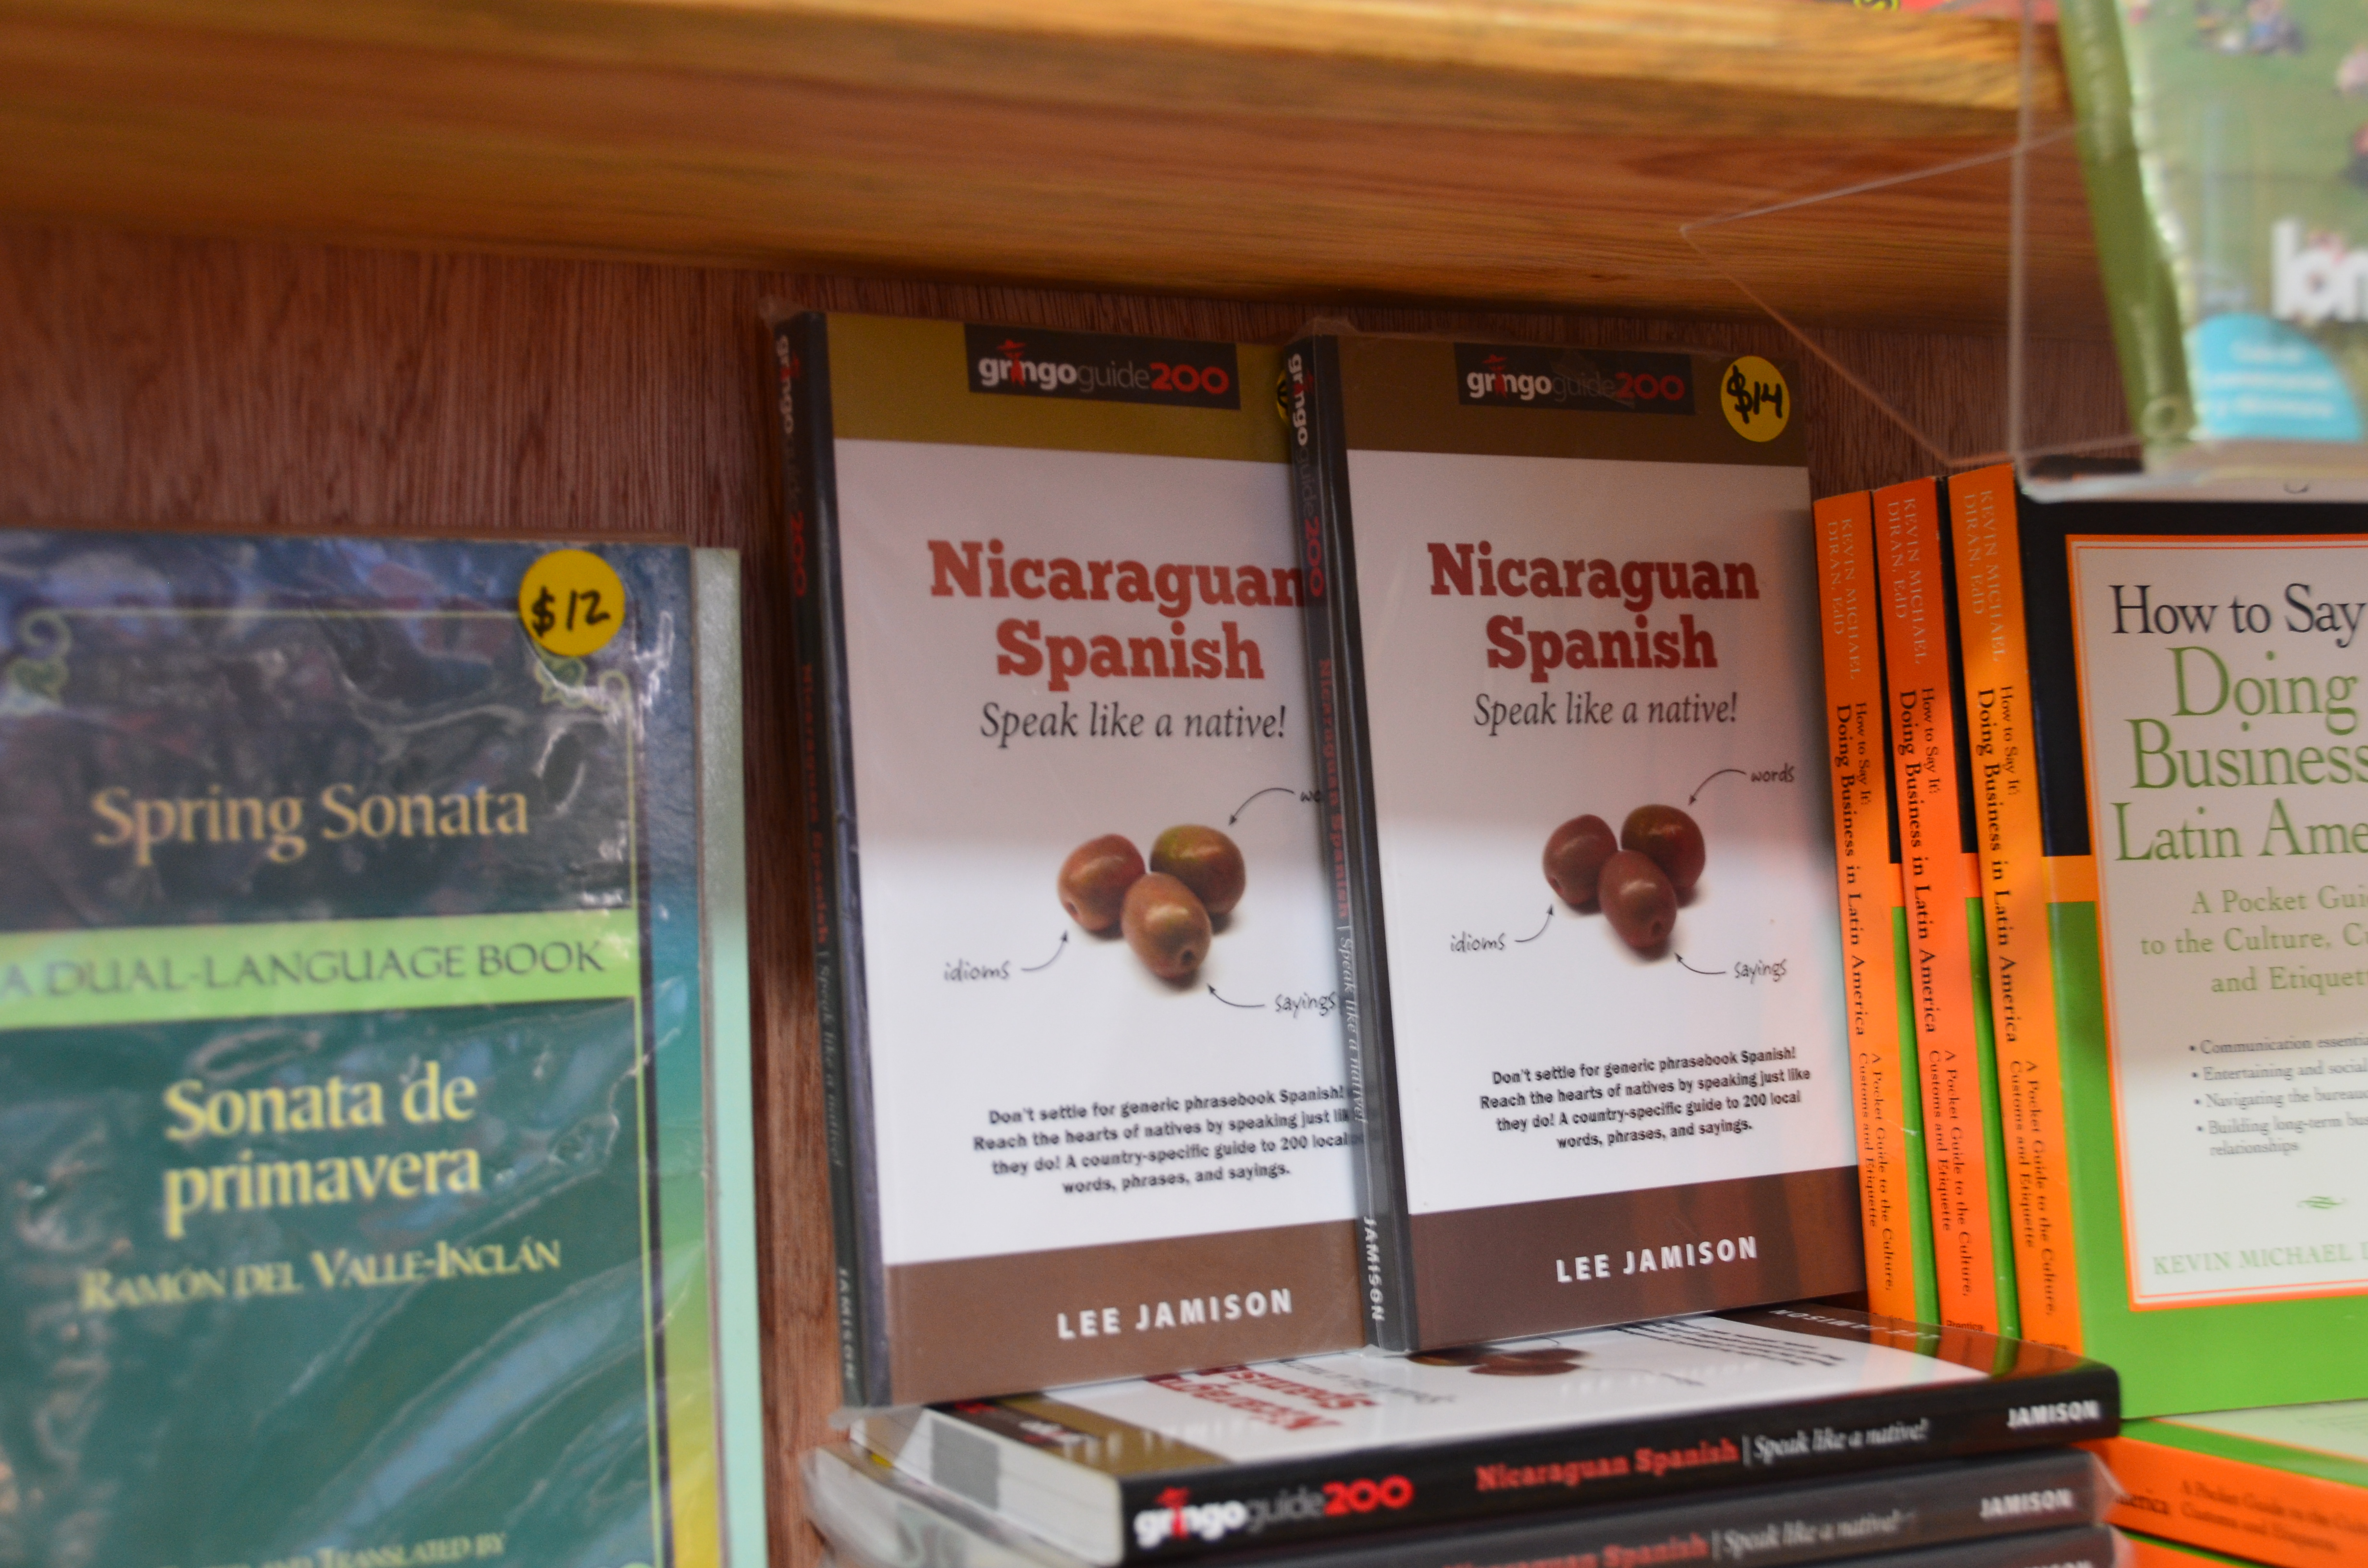 Nicaragua: A Journey of Spanish Language